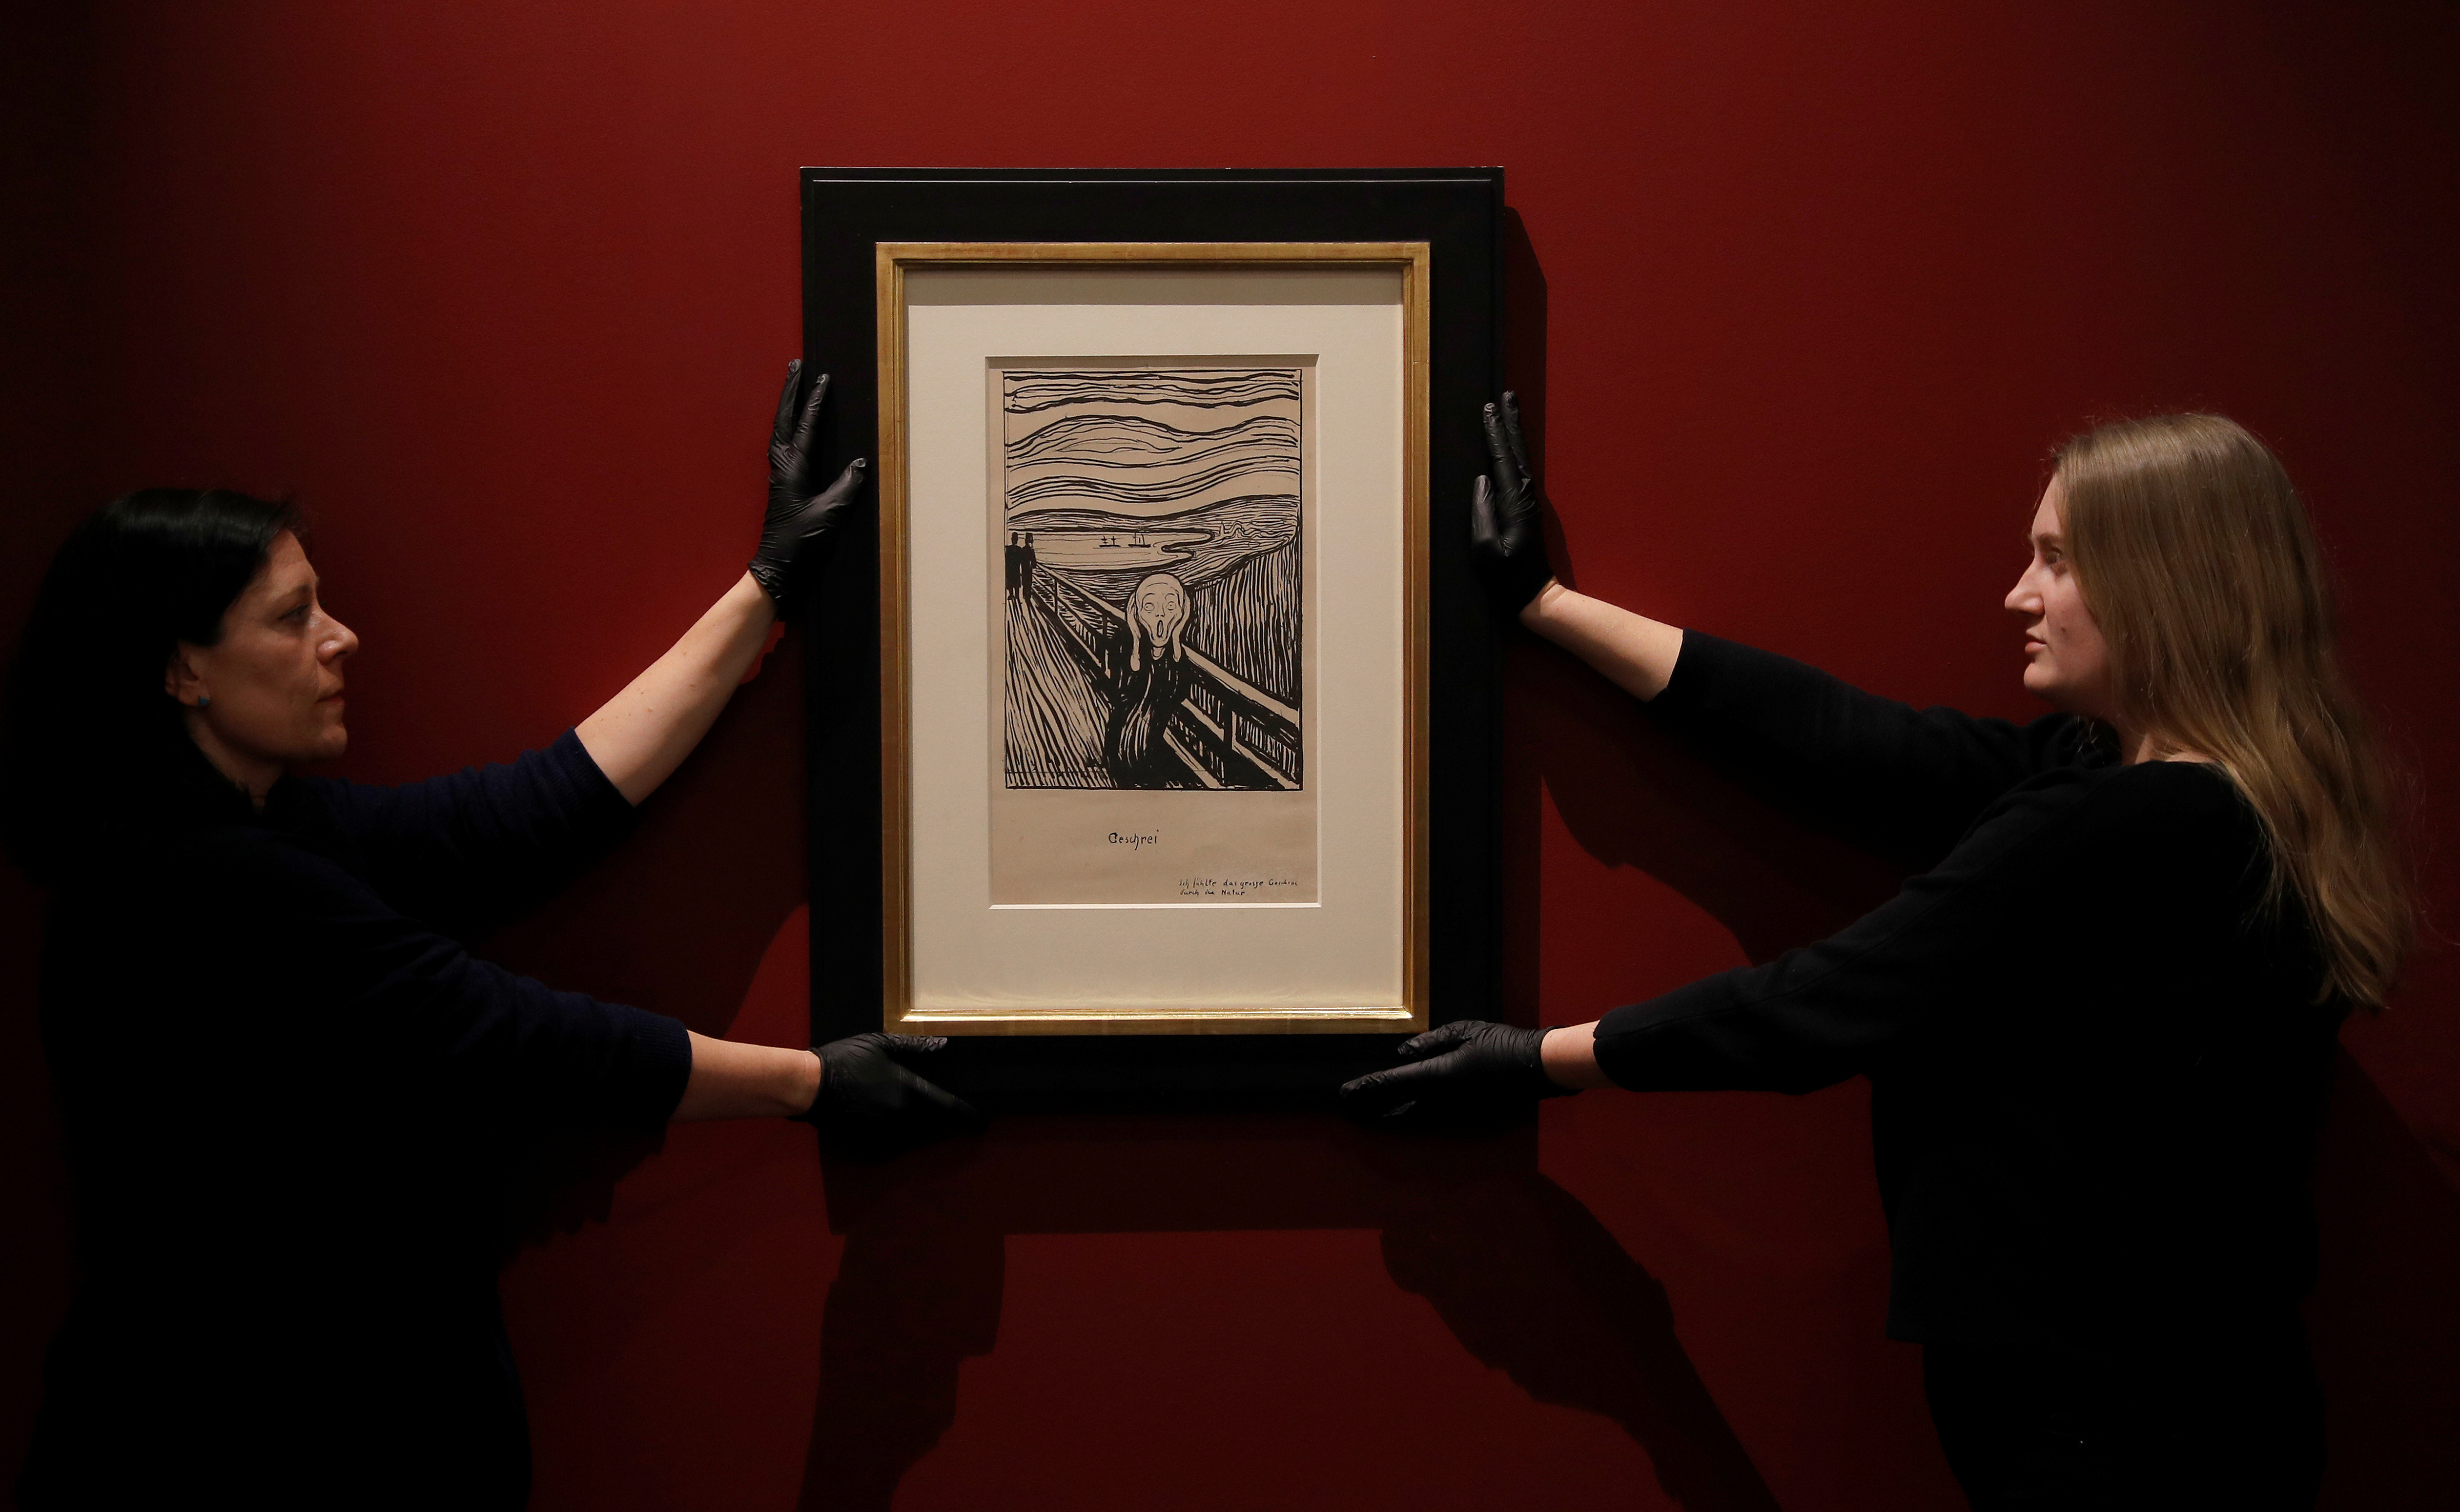 """Staff-members pose for a photograph as they hang a lithograph of The Scream by Edvard Munch ahead of the exhibition """"Edvard Munch: love and angst"""", soon to be on display at the British Museum in London, Britain, March 20, 2019."""